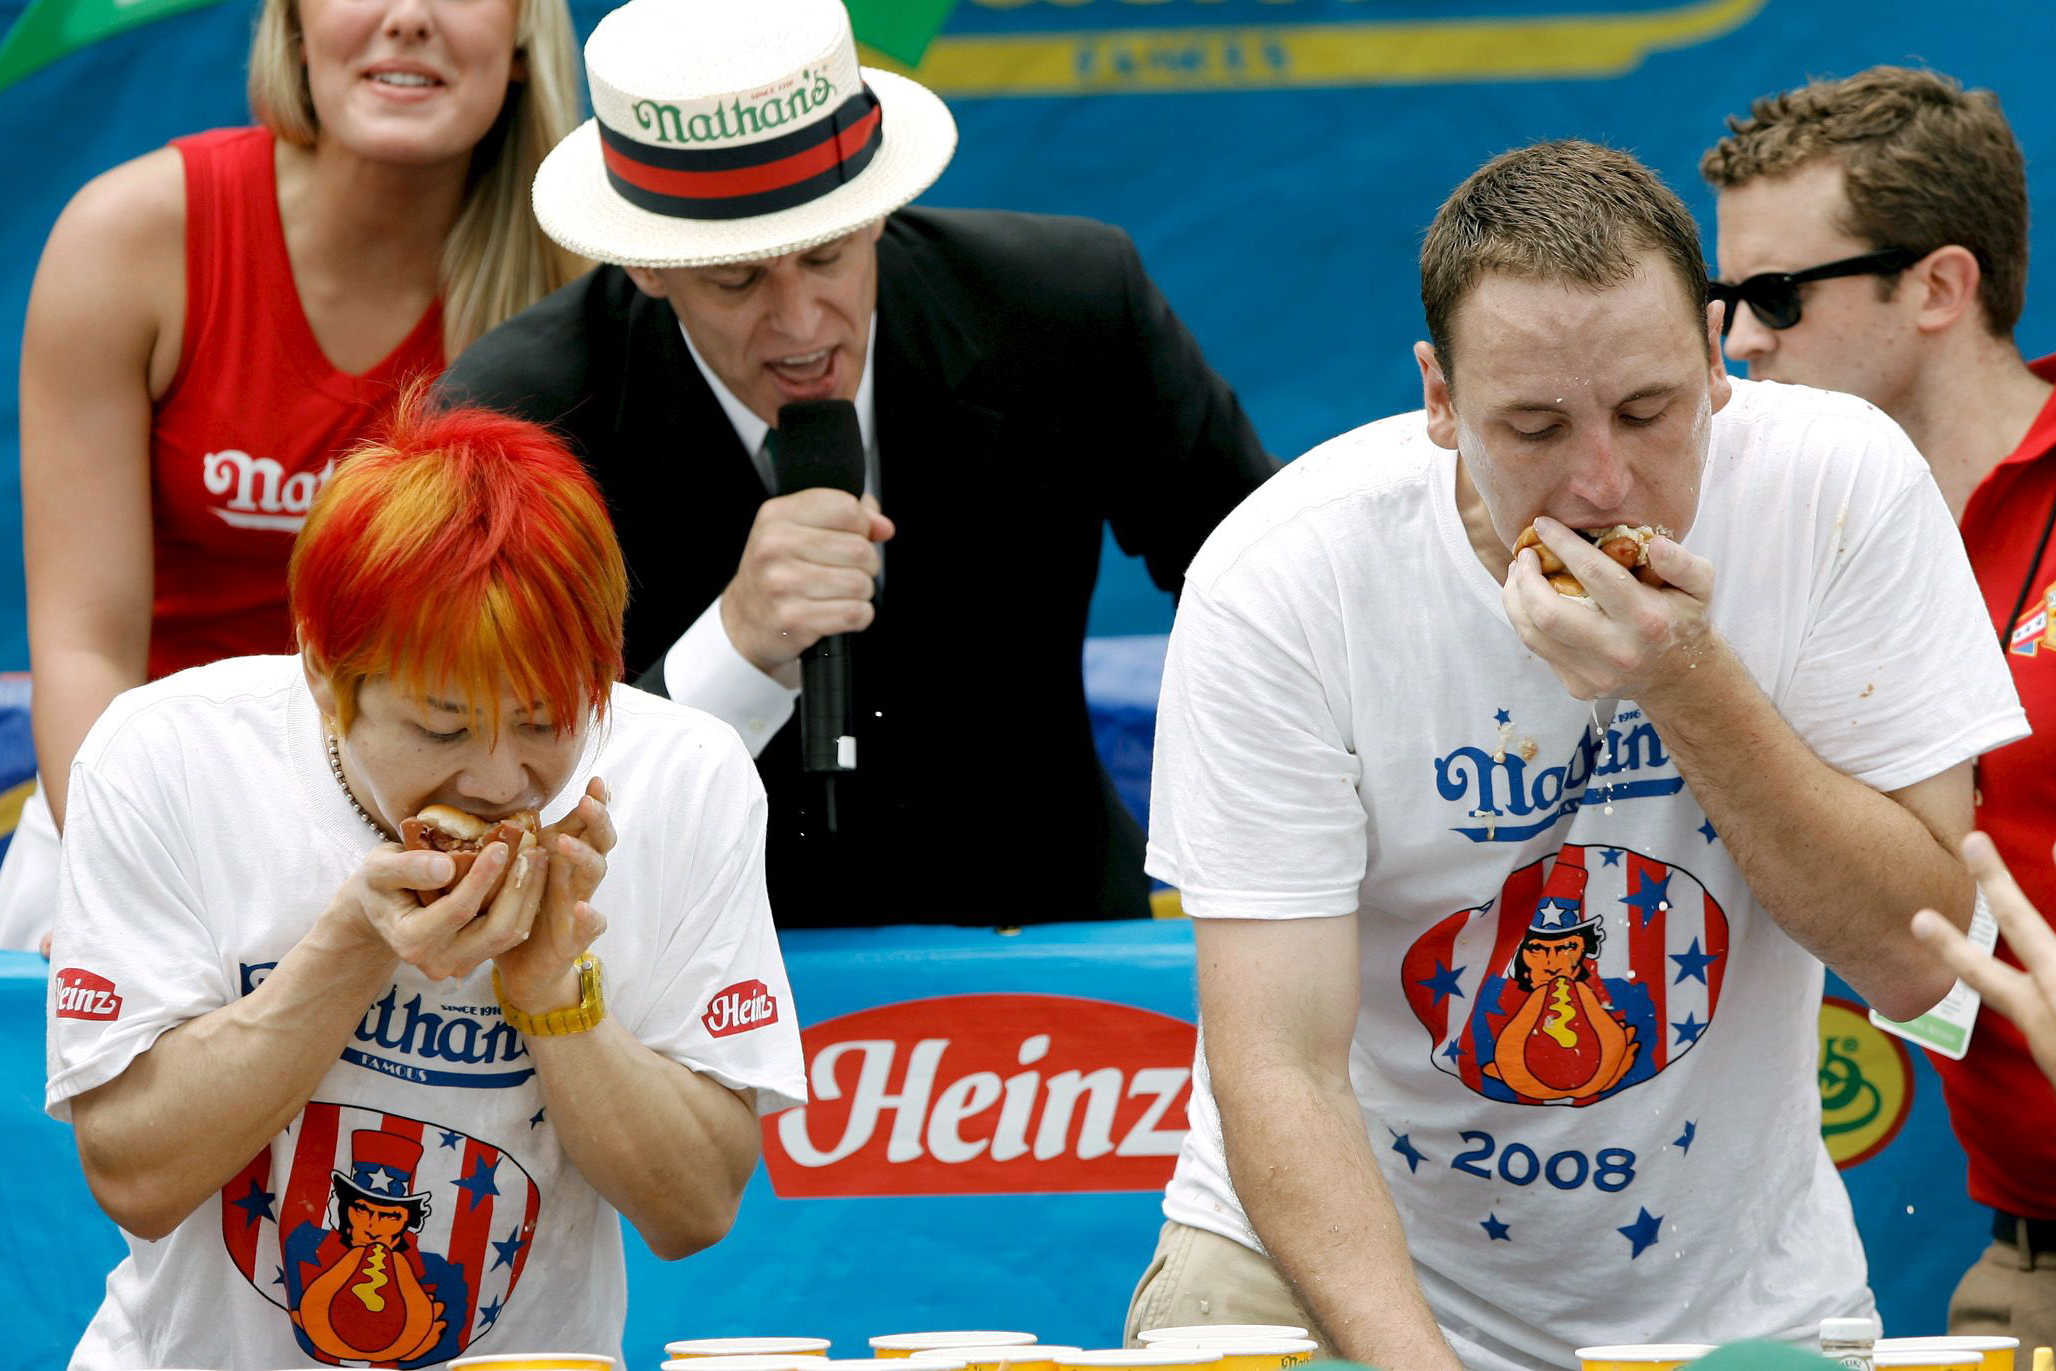 brand new d6590 04552 Joey Chestnut (r) and Takeru Kobayashi Eat Hotdogs at Nathan s Hotdog  Eating Contest in